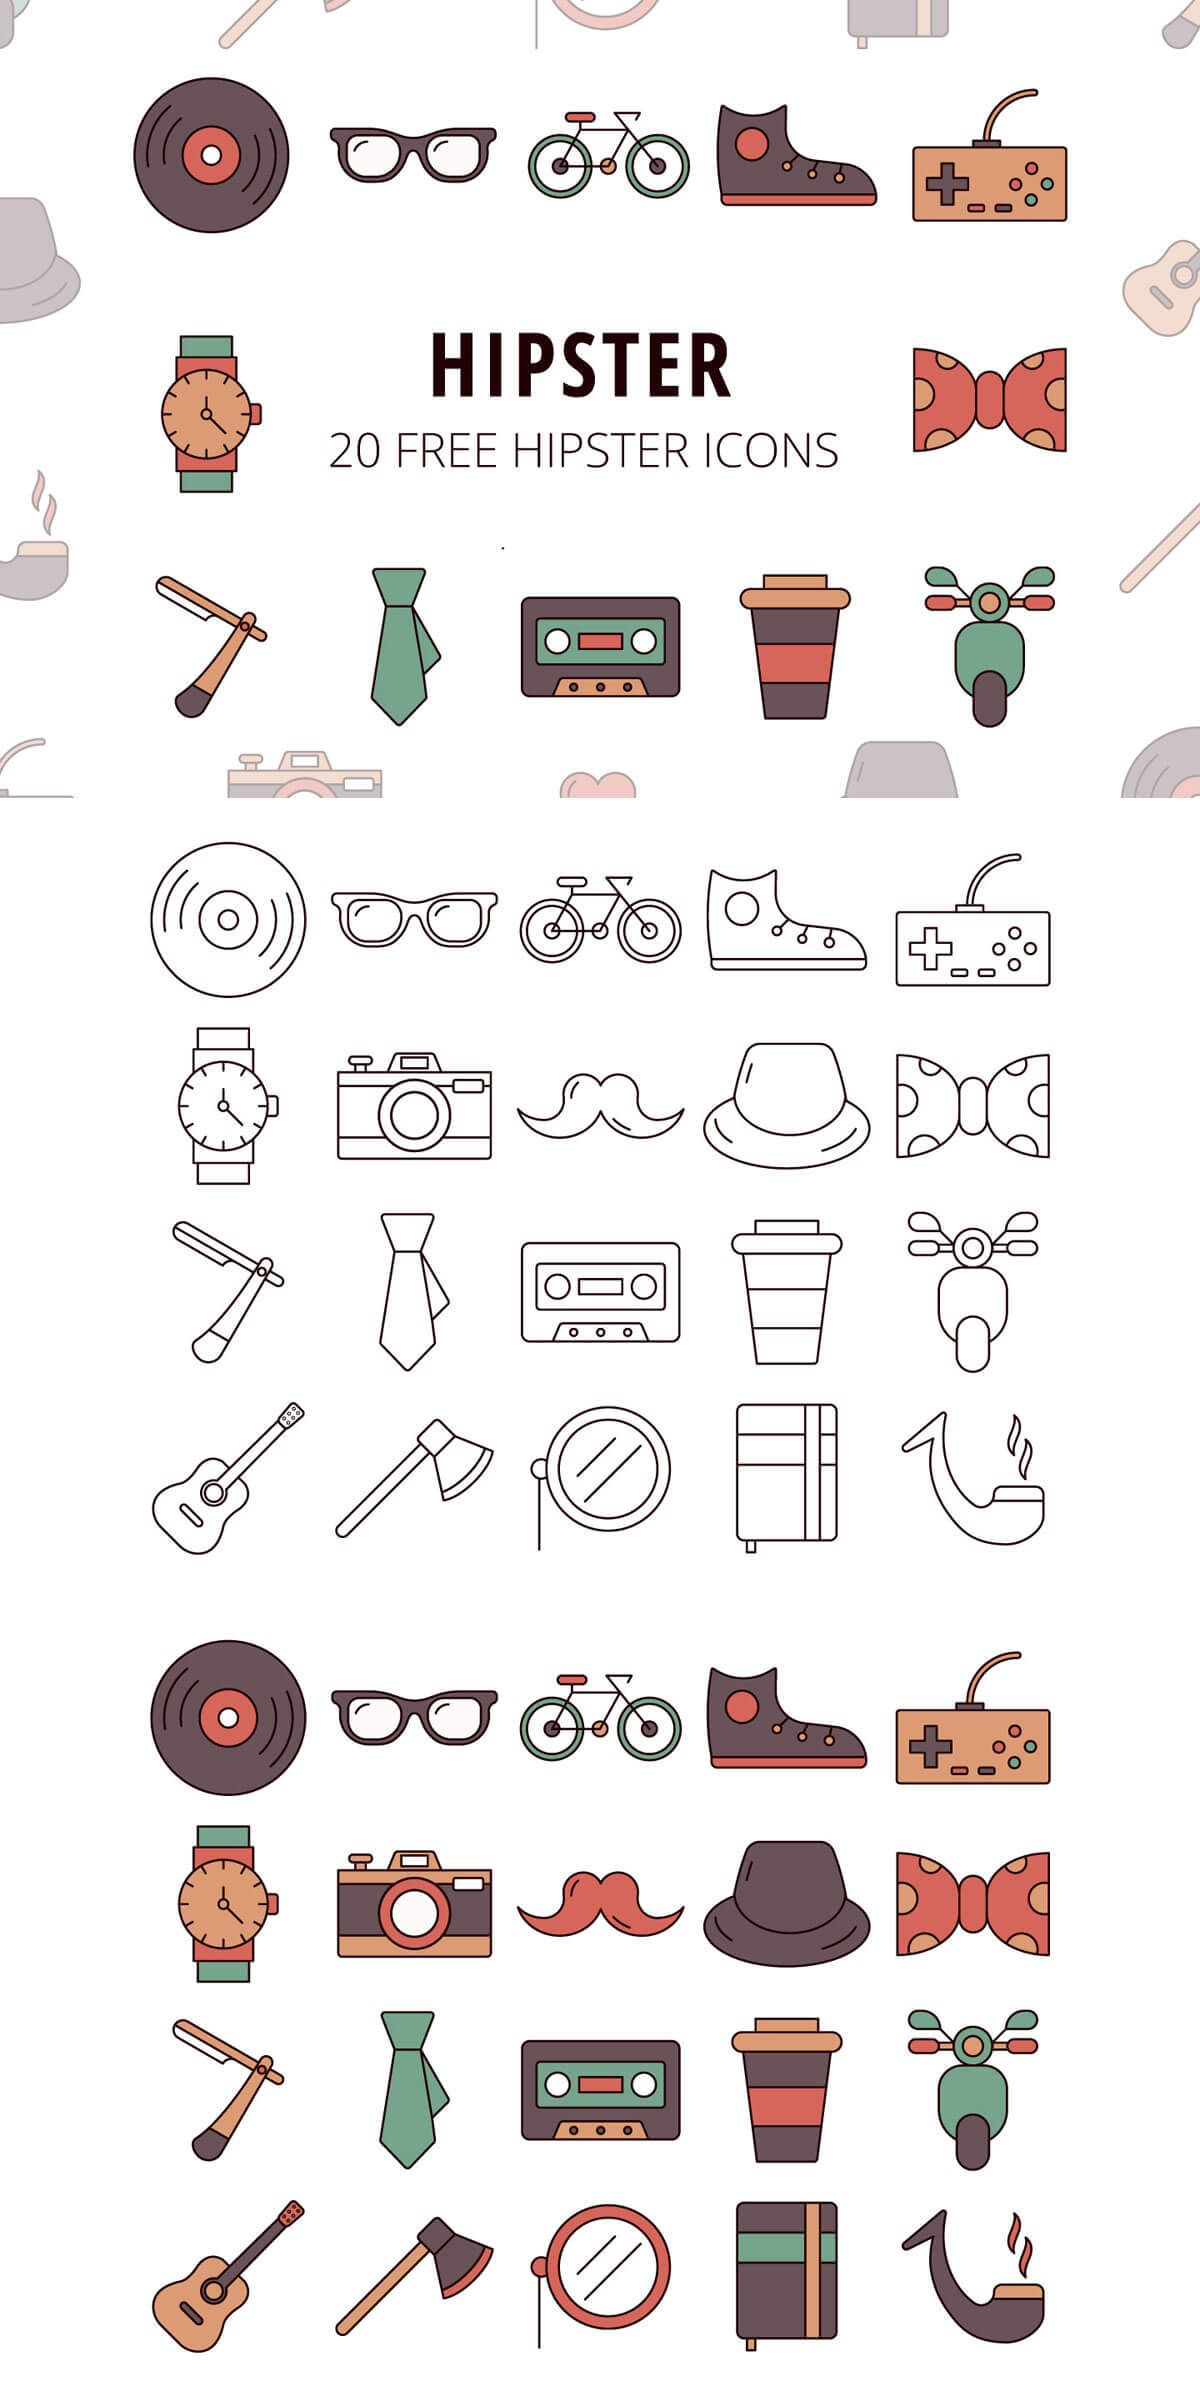 Free Hipster Vector Icon Set Icon set, Vector icons